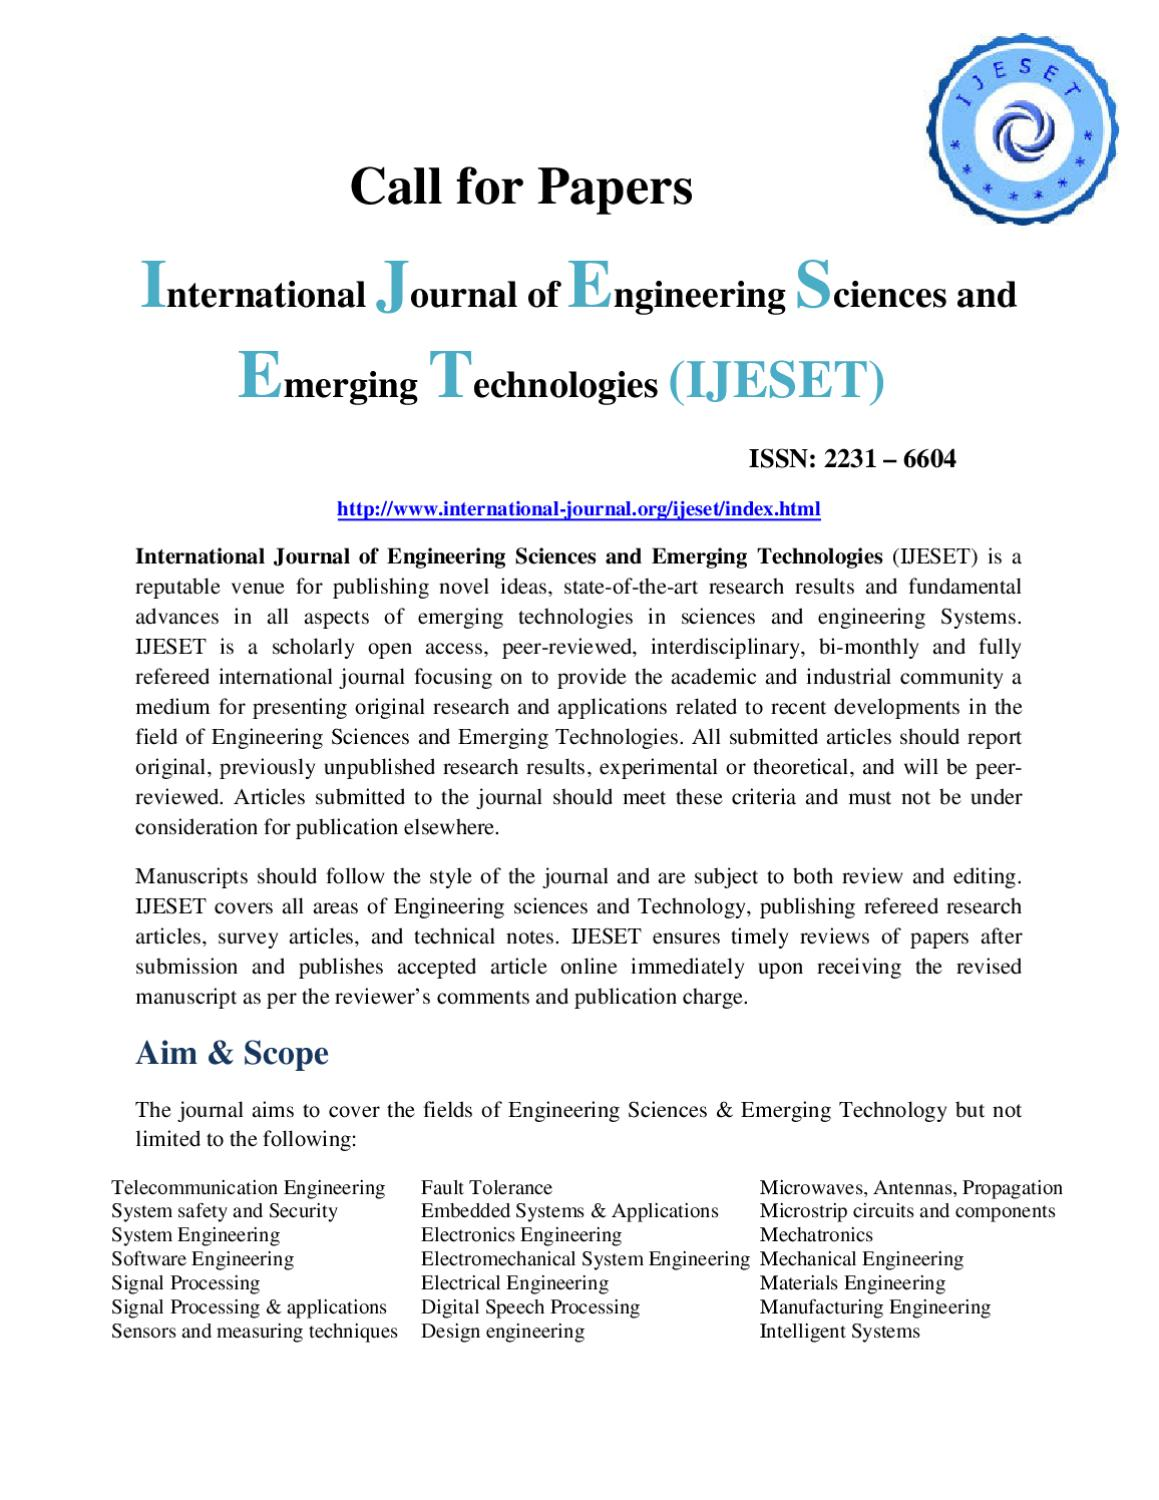 International Journal Of Engineering Sciences And Emerging Technologies Ijeset By Dr P Singh Issuu